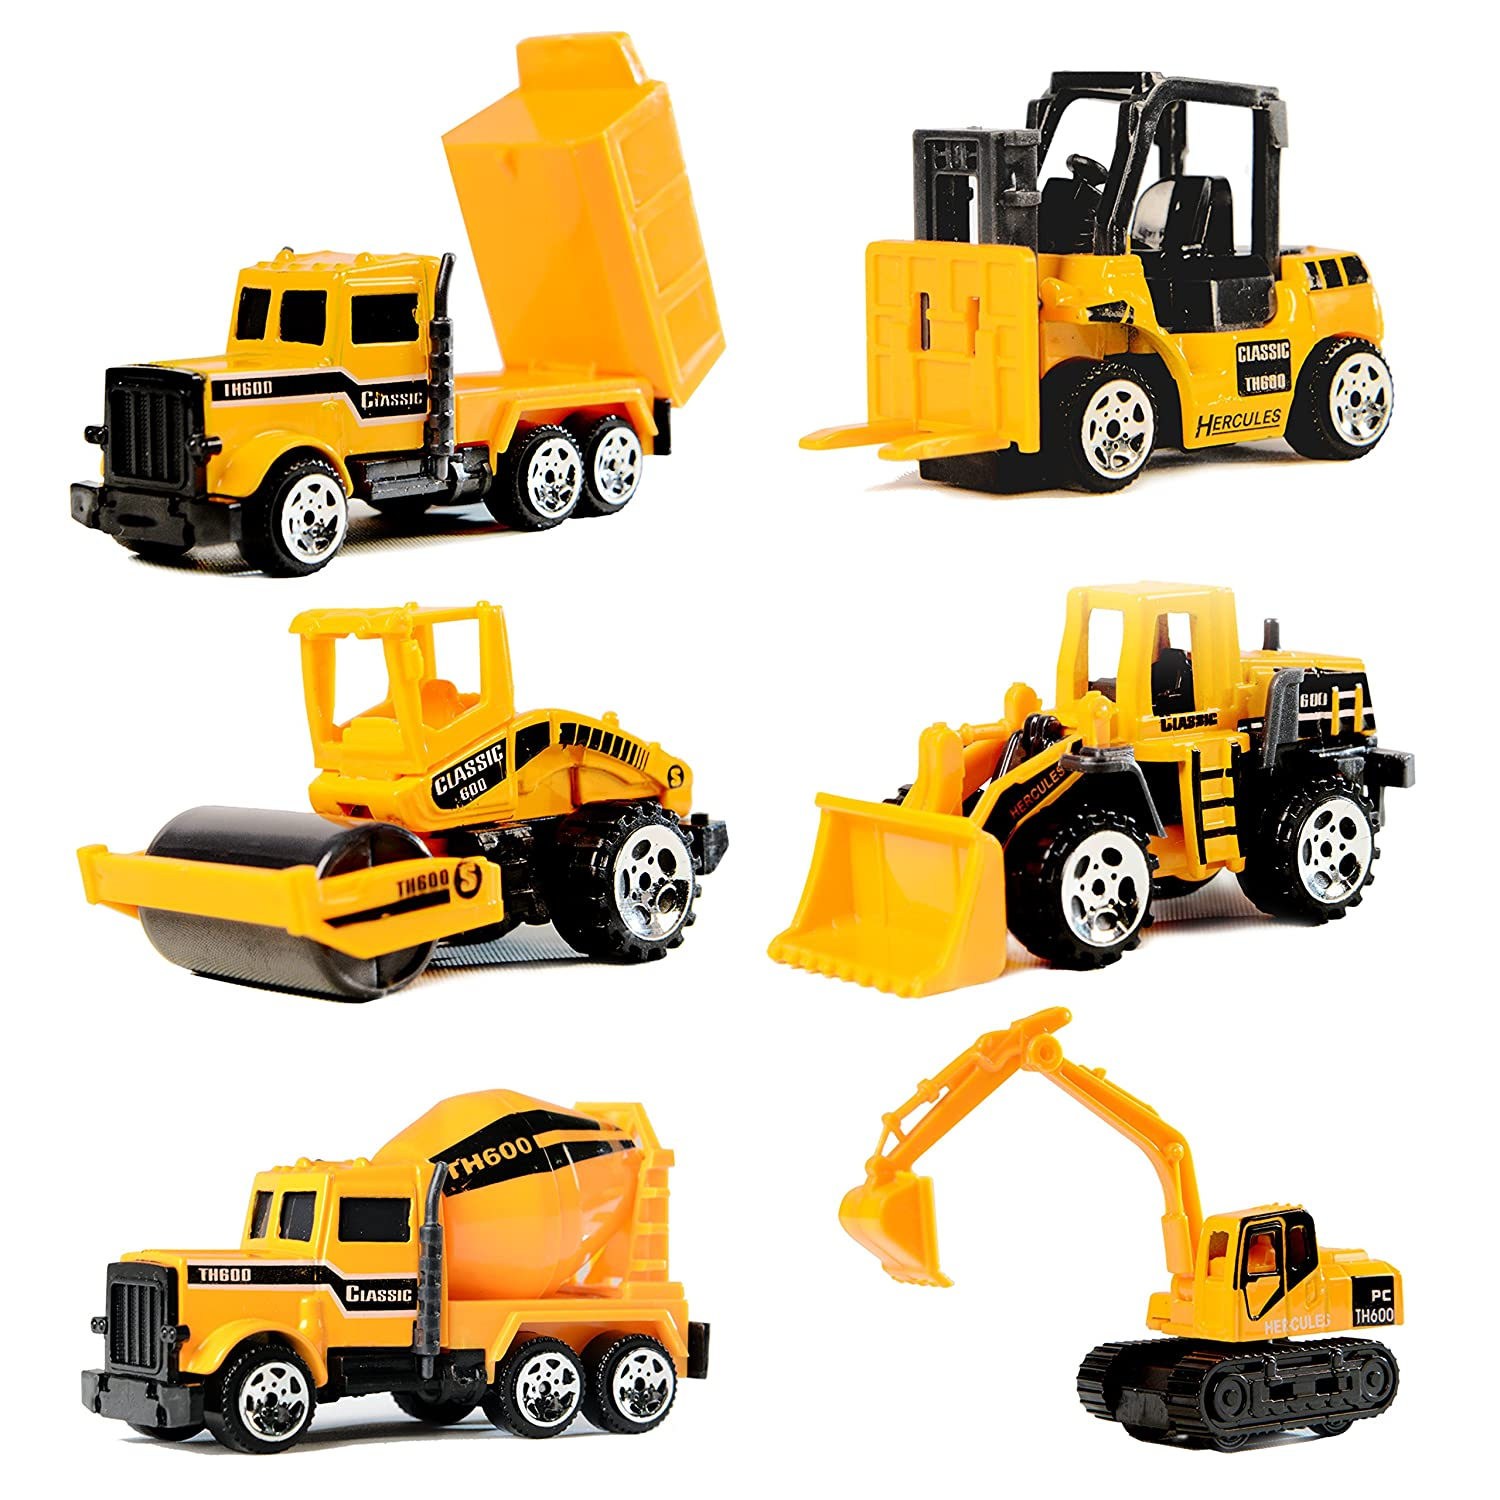 Nunki Toy Construction Vehicles,2.7 Inch Mini Engineering Vehicles Set(6 Pack), Push and Go Mini Model Construction Cars Toy Forklift,Bulldozers,Asphalt Car,Tank Truck,Excavator,Dumper for Kids